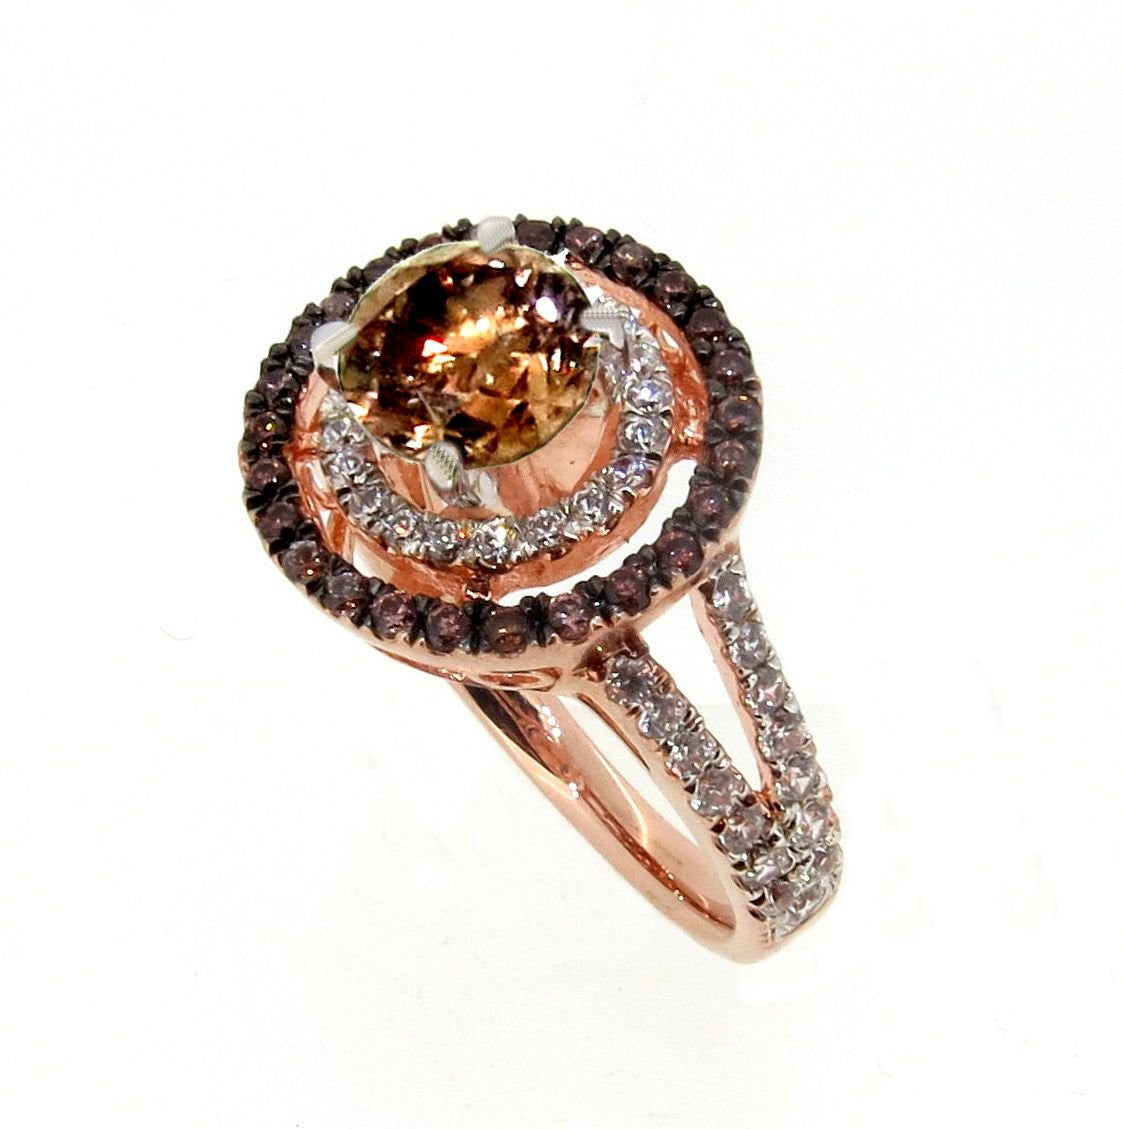 1 Carat Chocolate Brown Smoky Quartz White & Chocolate Brown Diamond Accent  Stones, Floating Halo